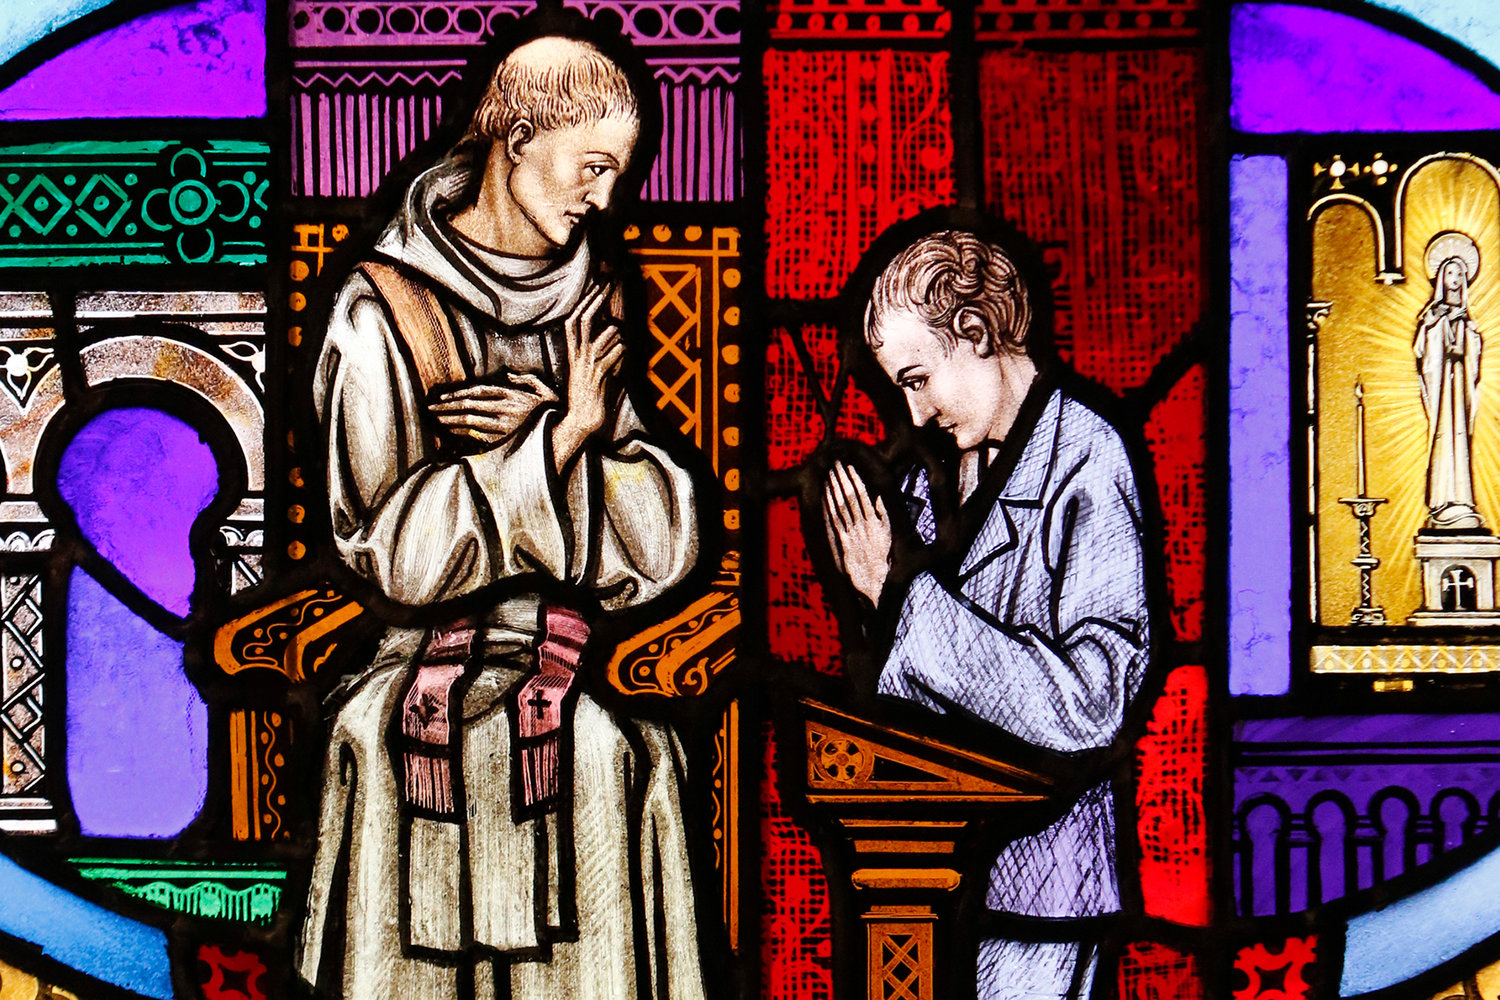 The sacrament of reconciliation is depicted in a stained-glass window at St. Aloysius Church in Great Neck, N.Y.